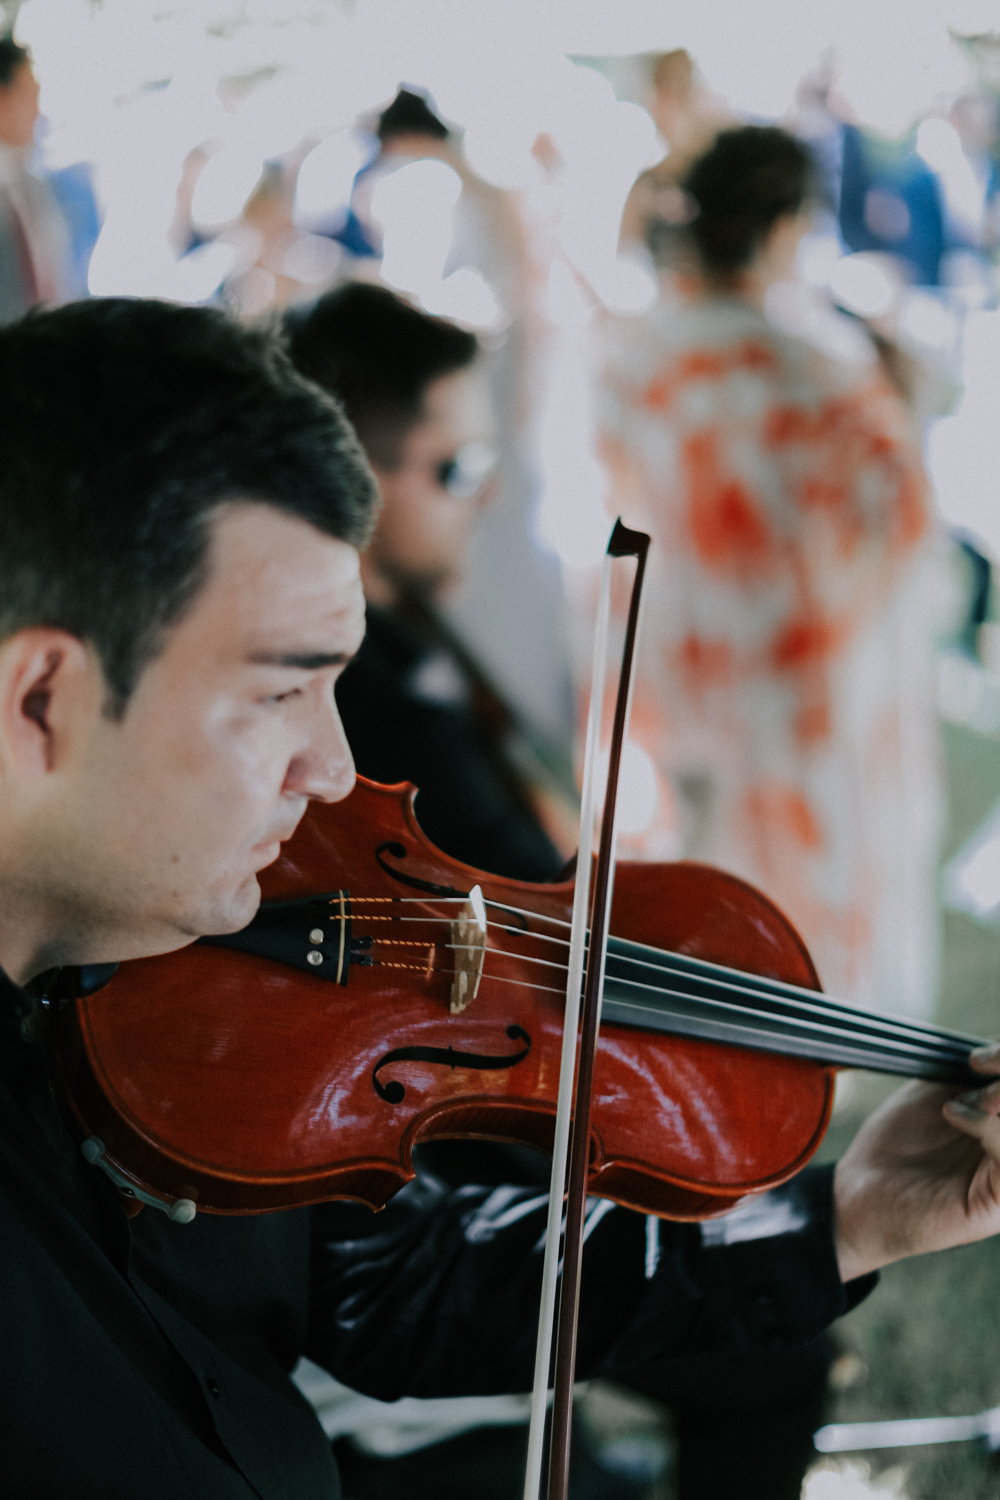 https://www.weddingamalfi.com/wp-content/uploads/Alessandro-and-Diego-wedding-music-classical-violin.jpg